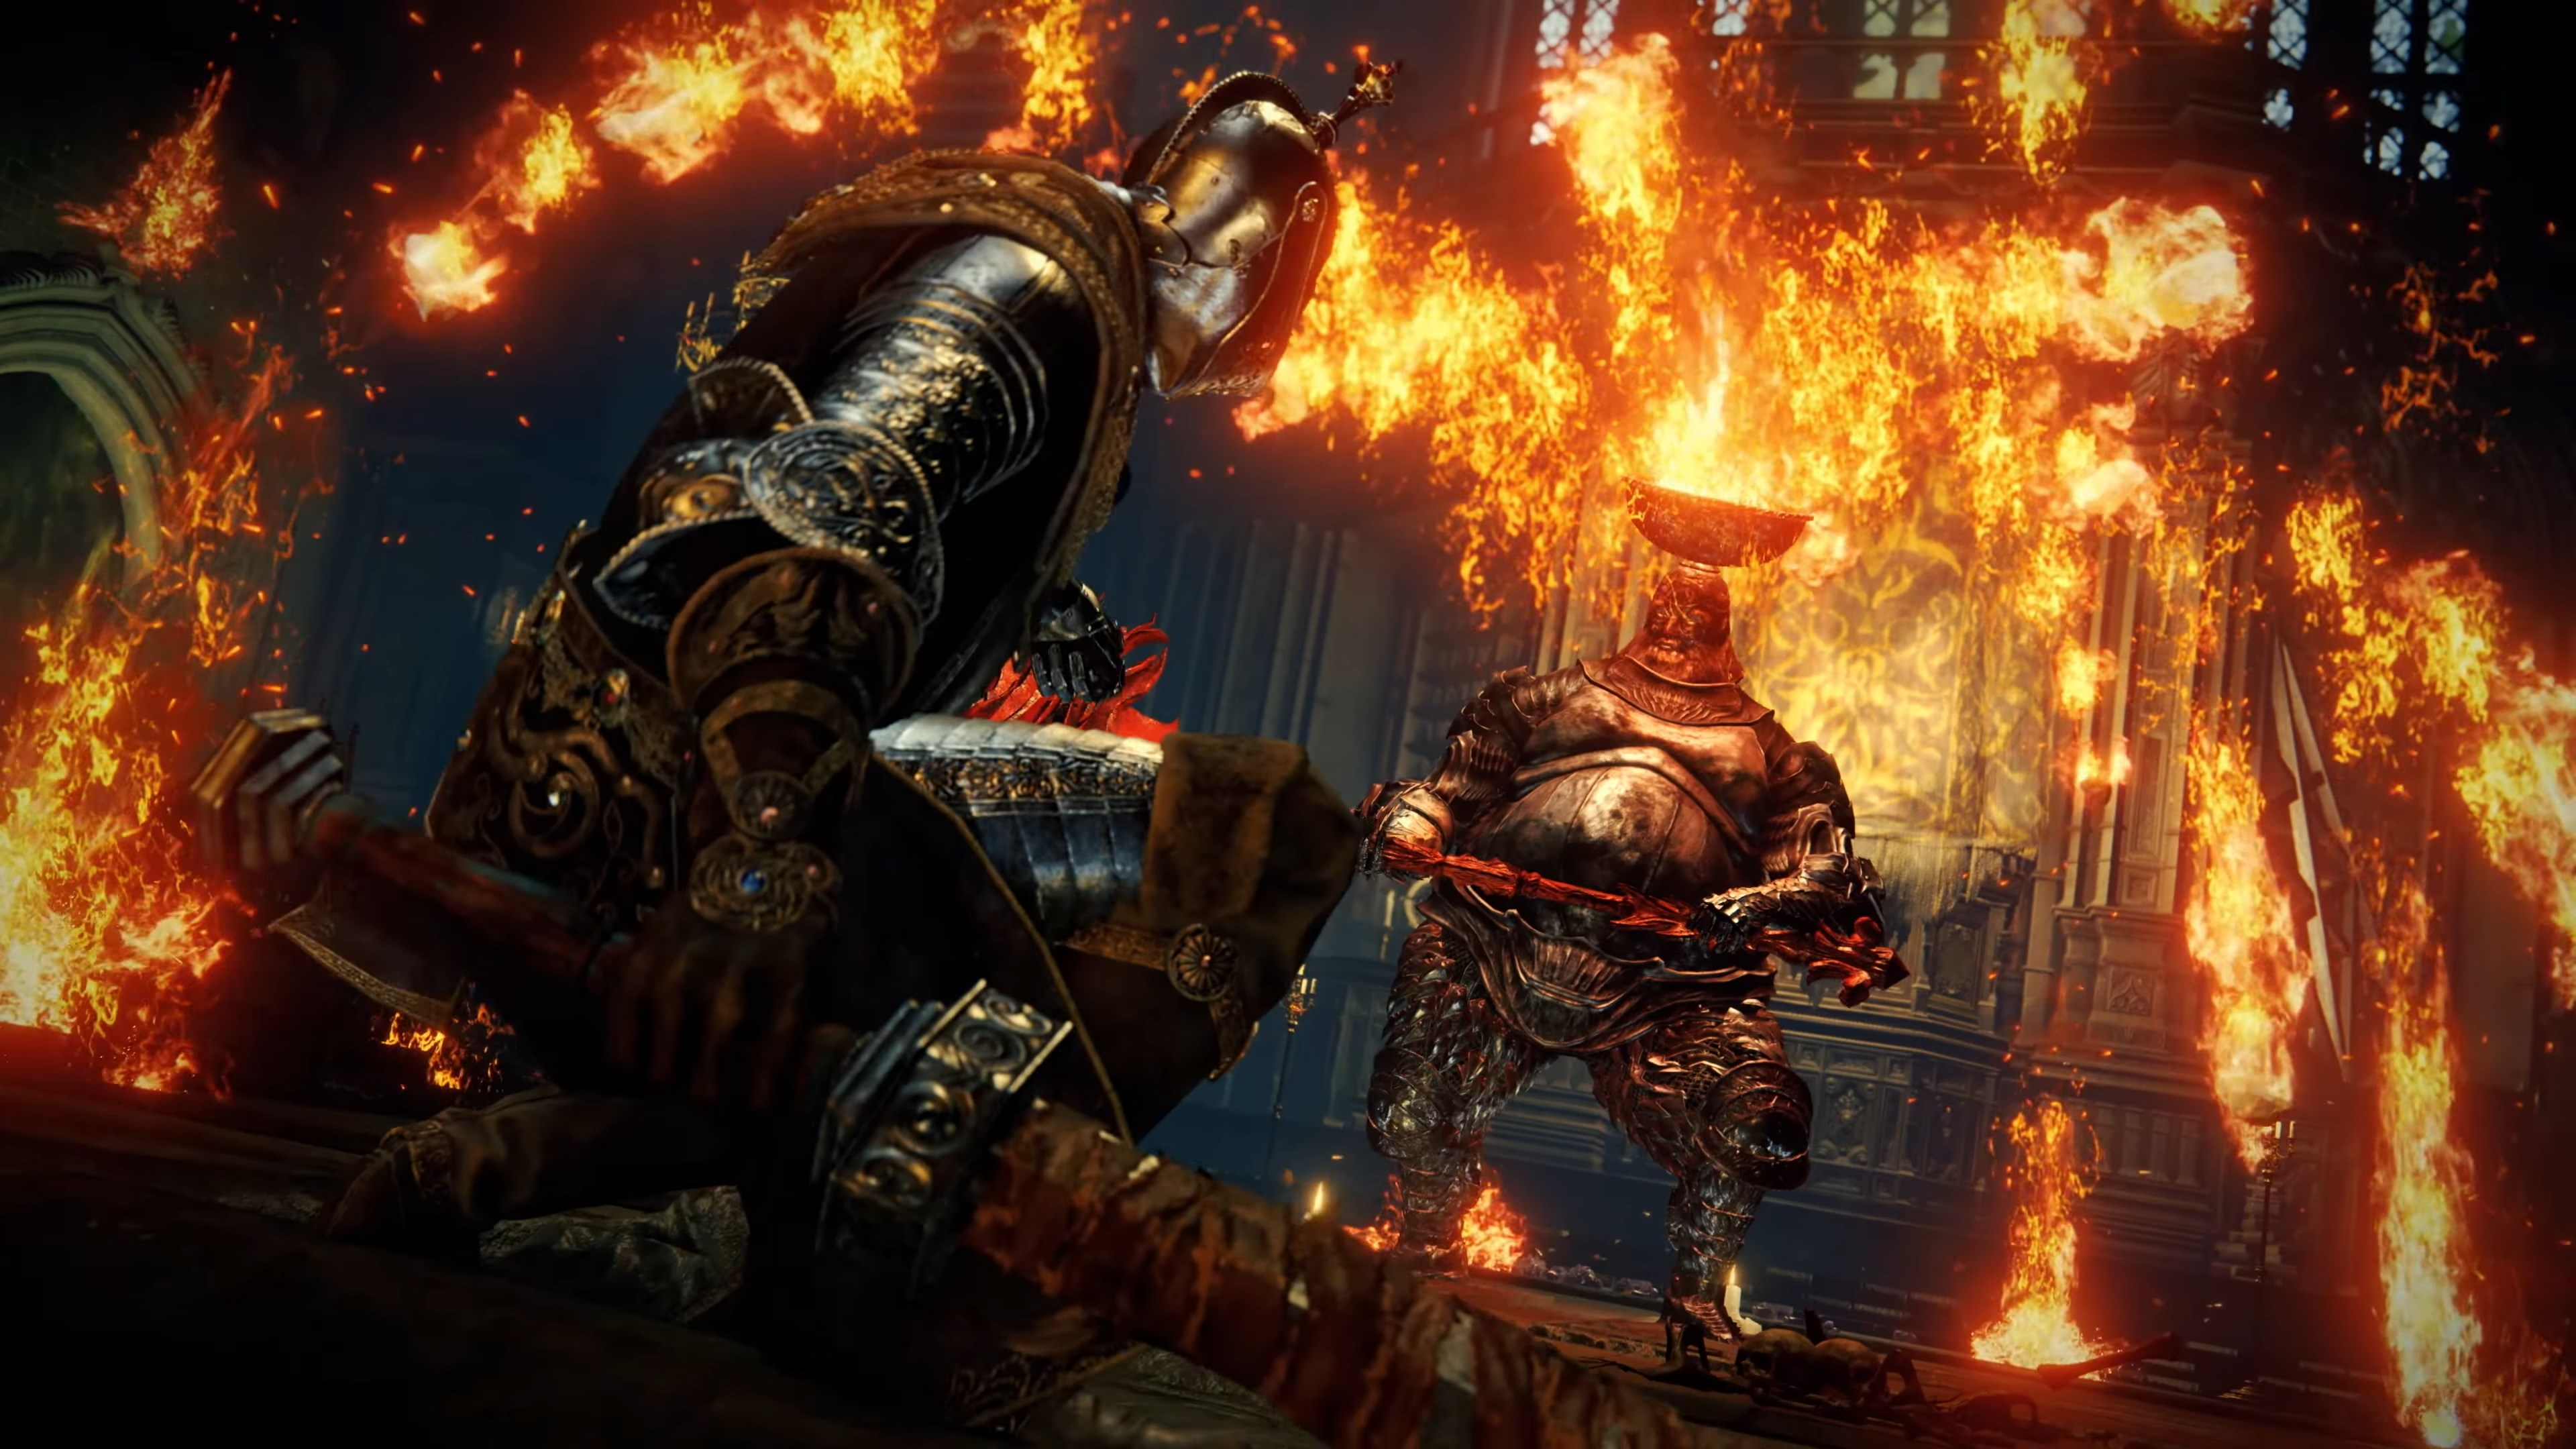 Elden Ring has 'from anywhere' fast travel and Dark Souls 3-style combat